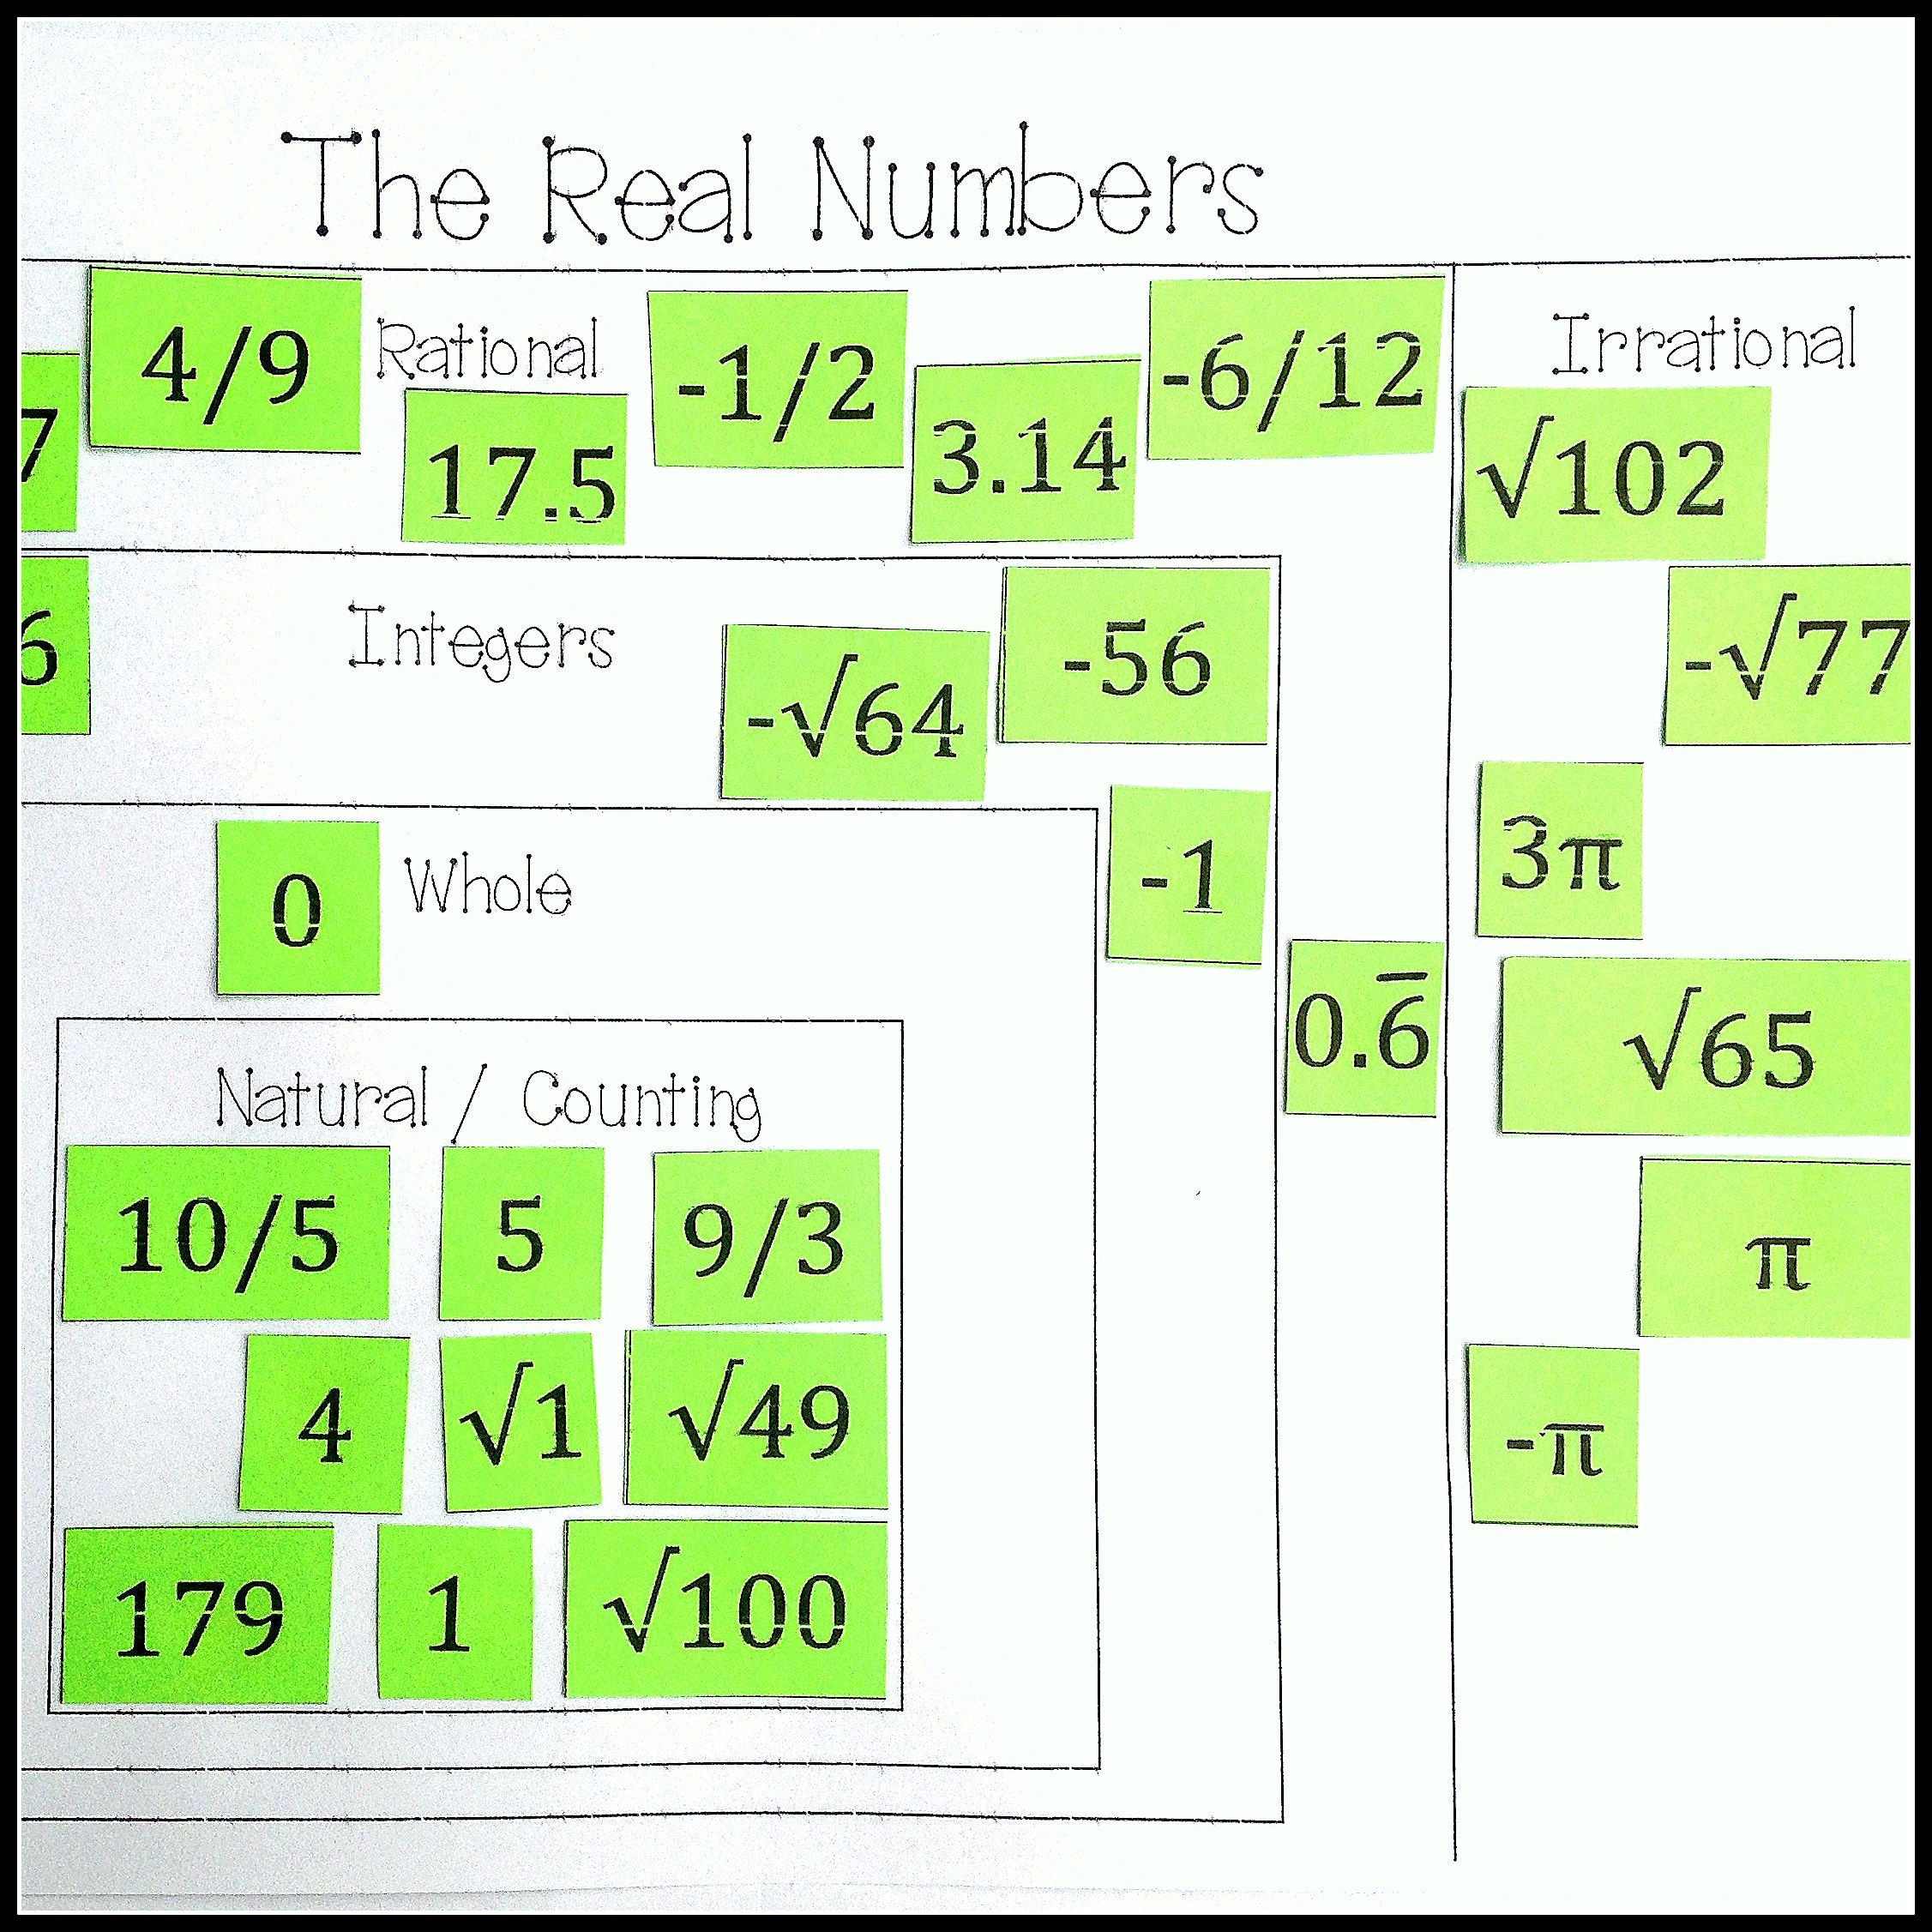 Real Numbers Worksheet with Answers 25 Real Number System Worksheet Answers Worksheet Resource